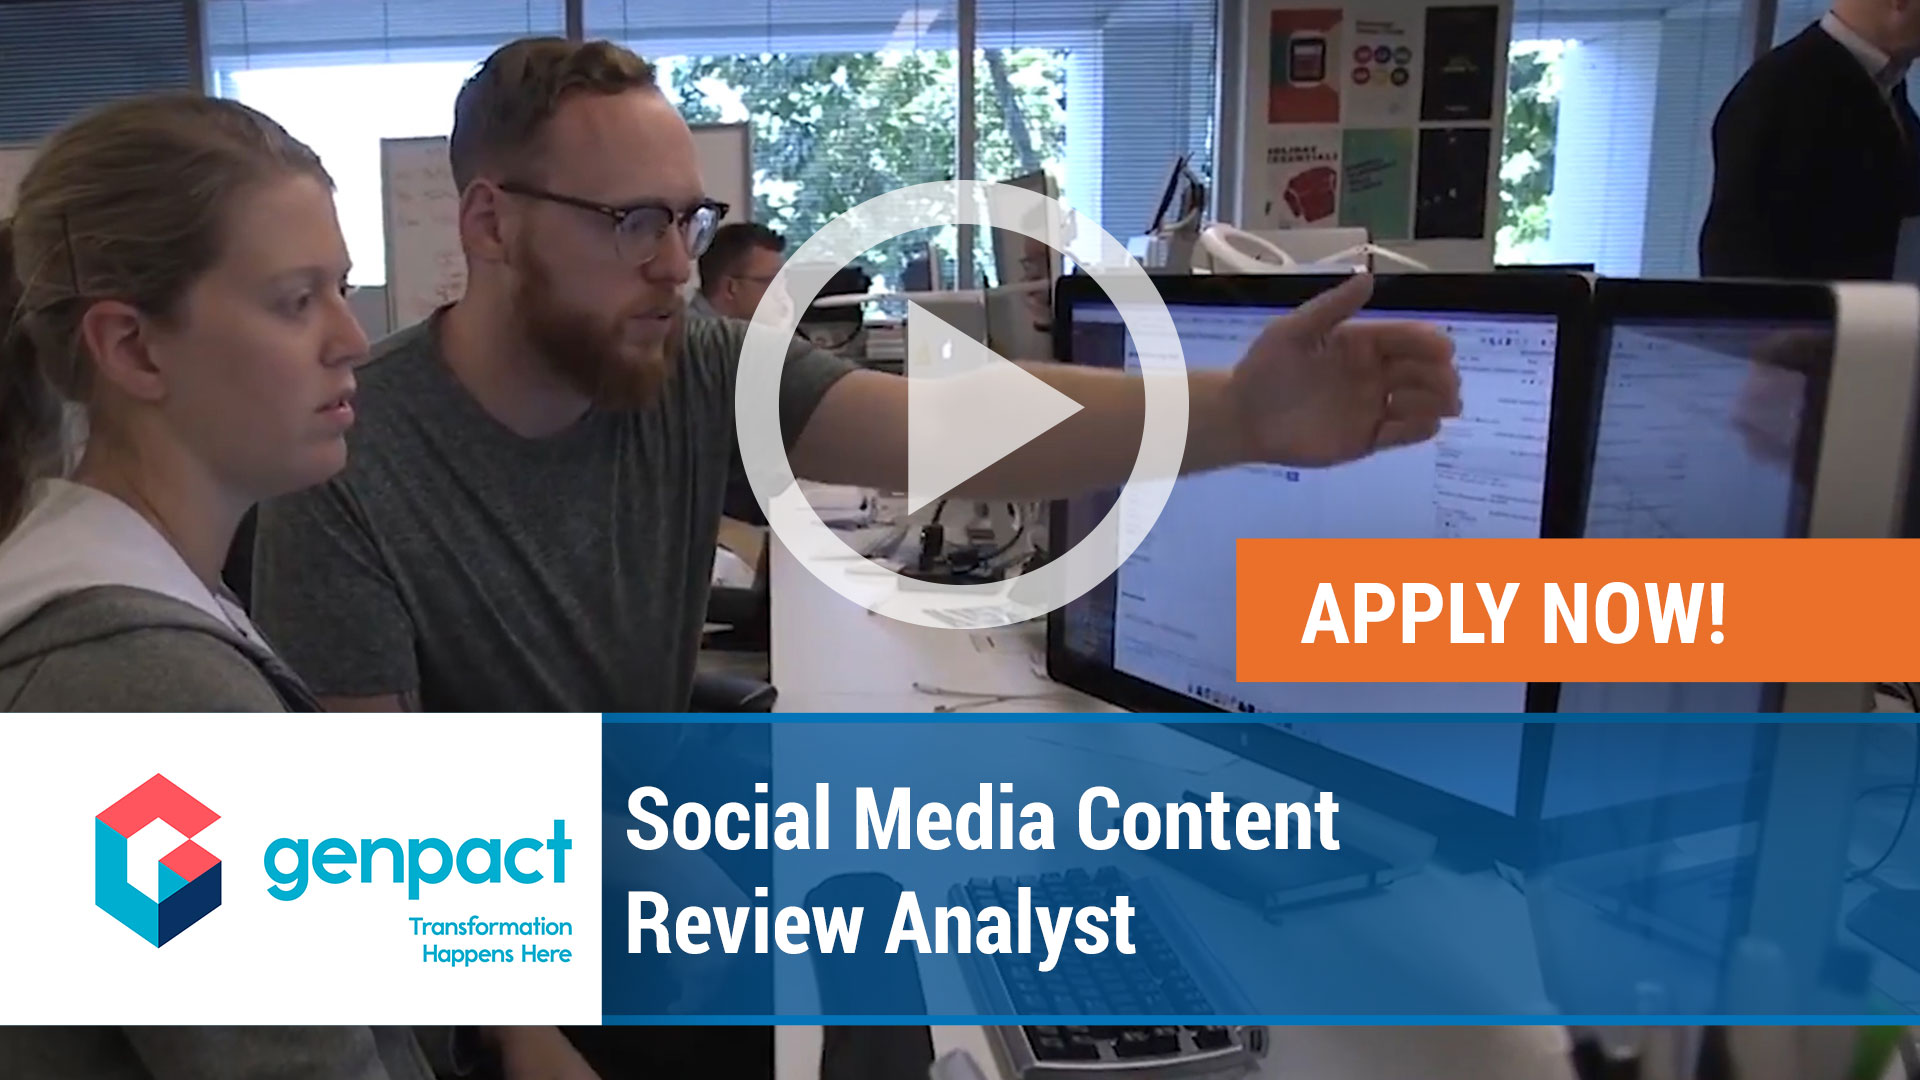 Social Media Content Review Analyst - Genpact - Video Hosted